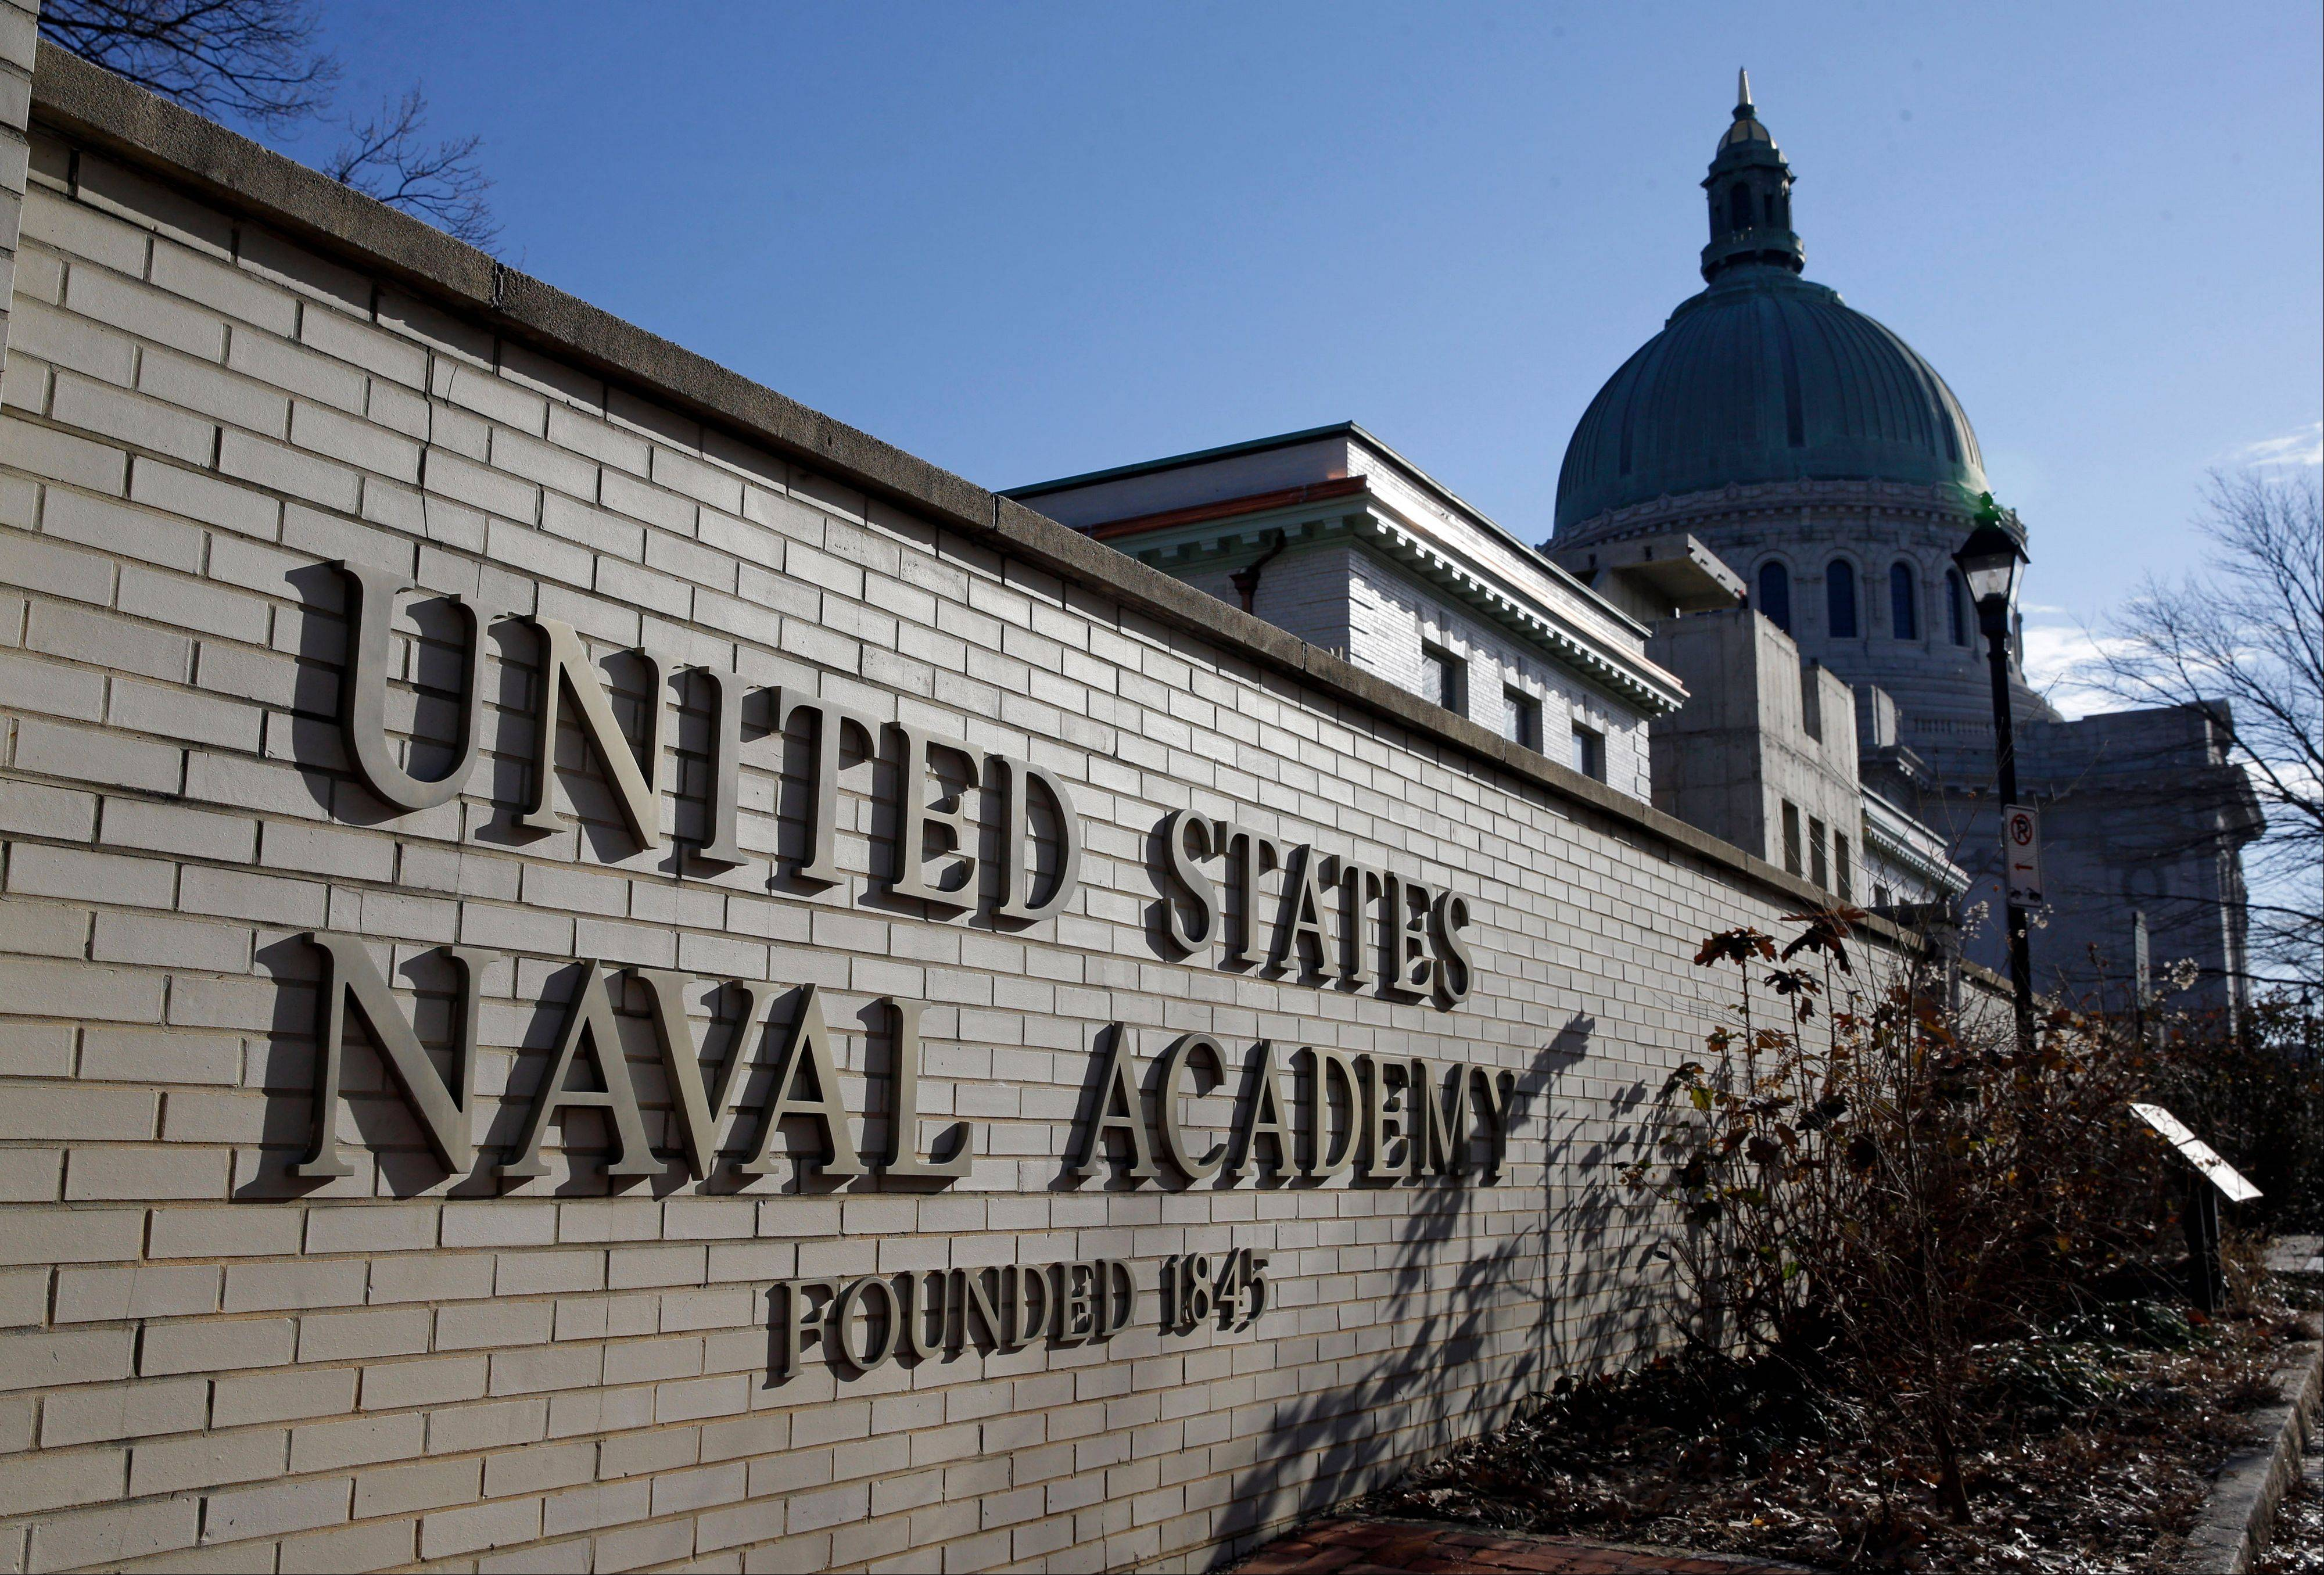 A culture of bad behavior and disrespect among athletes at U.S. military academies is one part of the continuing problem of sexual assaults at the schools, according to a new Defense Department report that comes in the wake of scandals that rocked teams at all three academies last year.